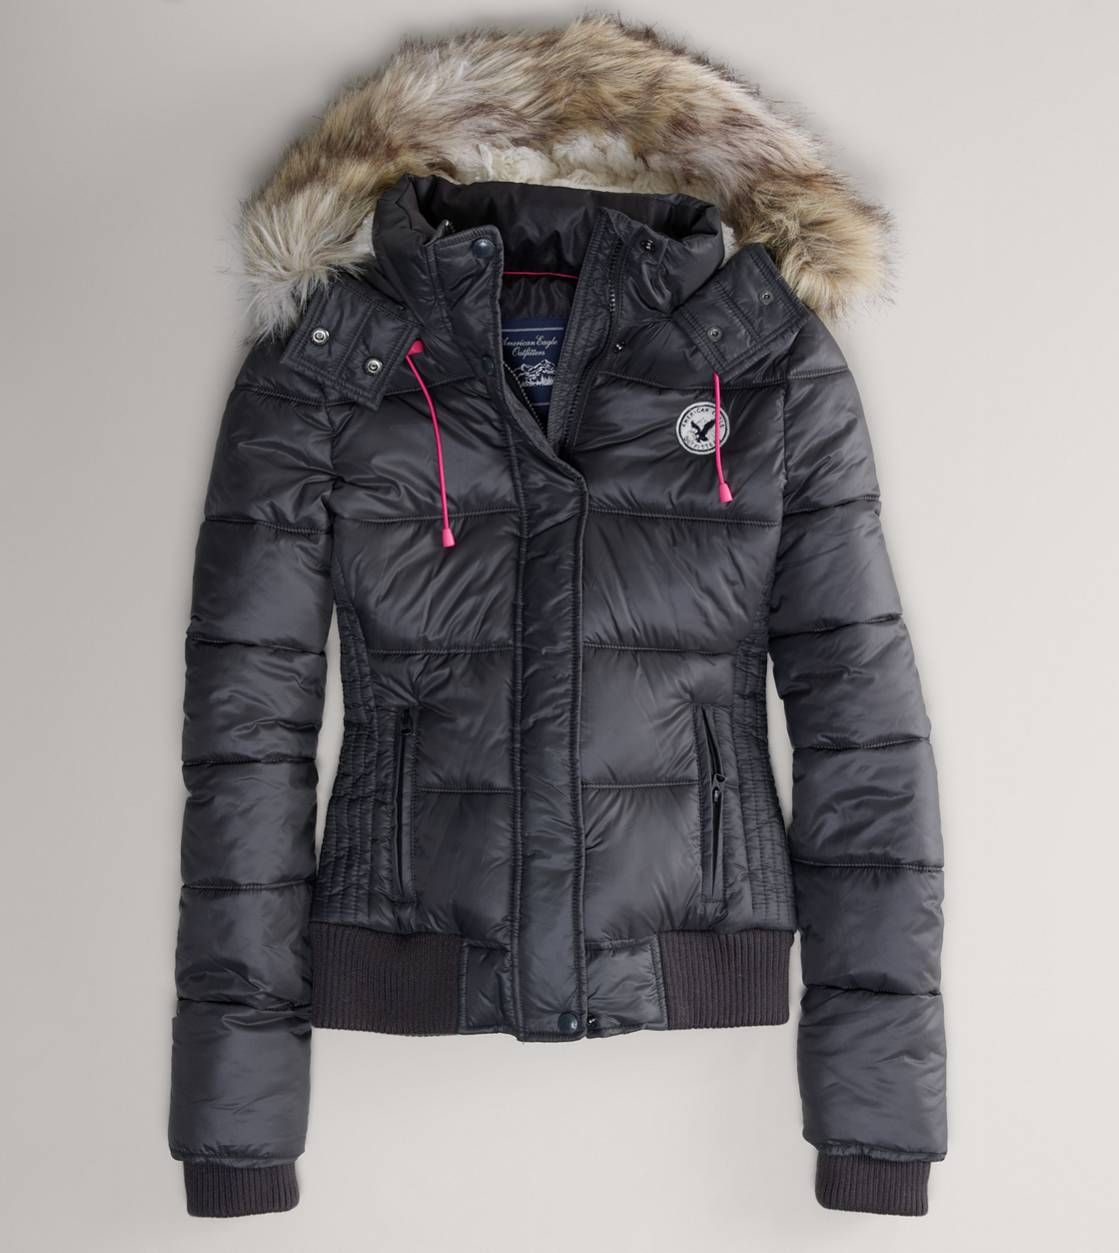 Clearance Outerwear American Eagle Outfitters Puffer Jacket Fur Hood Jackets Puffer Jacket Style [ 1253 x 1119 Pixel ]